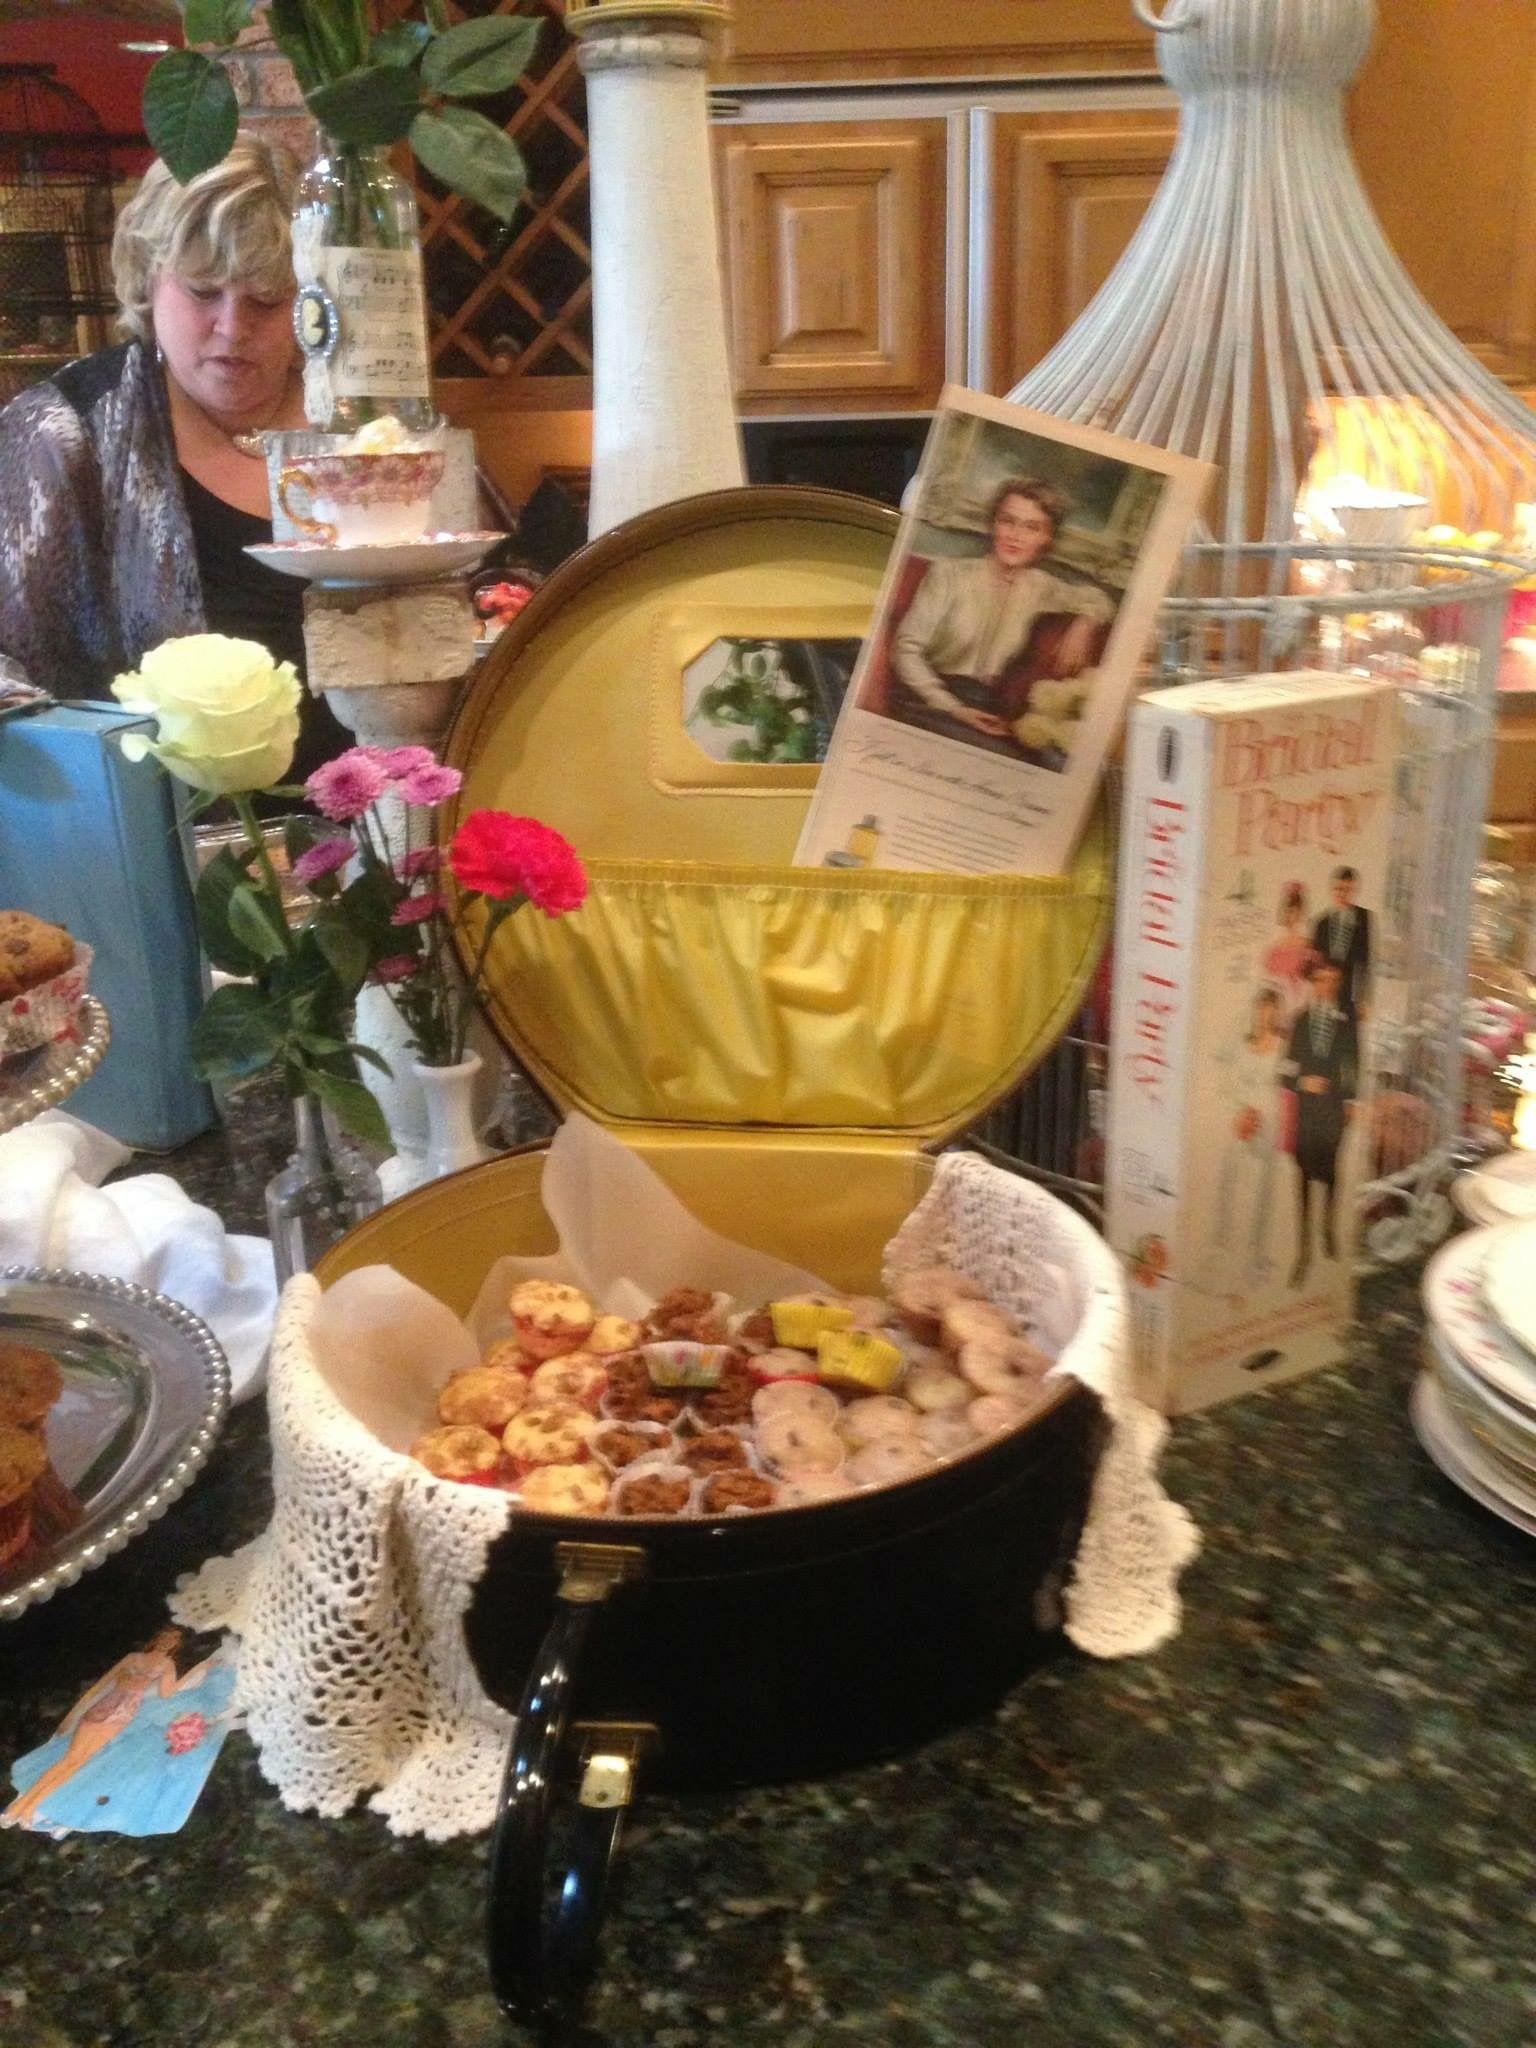 Vintage majorette marching band case used for muffin display at a vintage bridal shower breakfast buffet